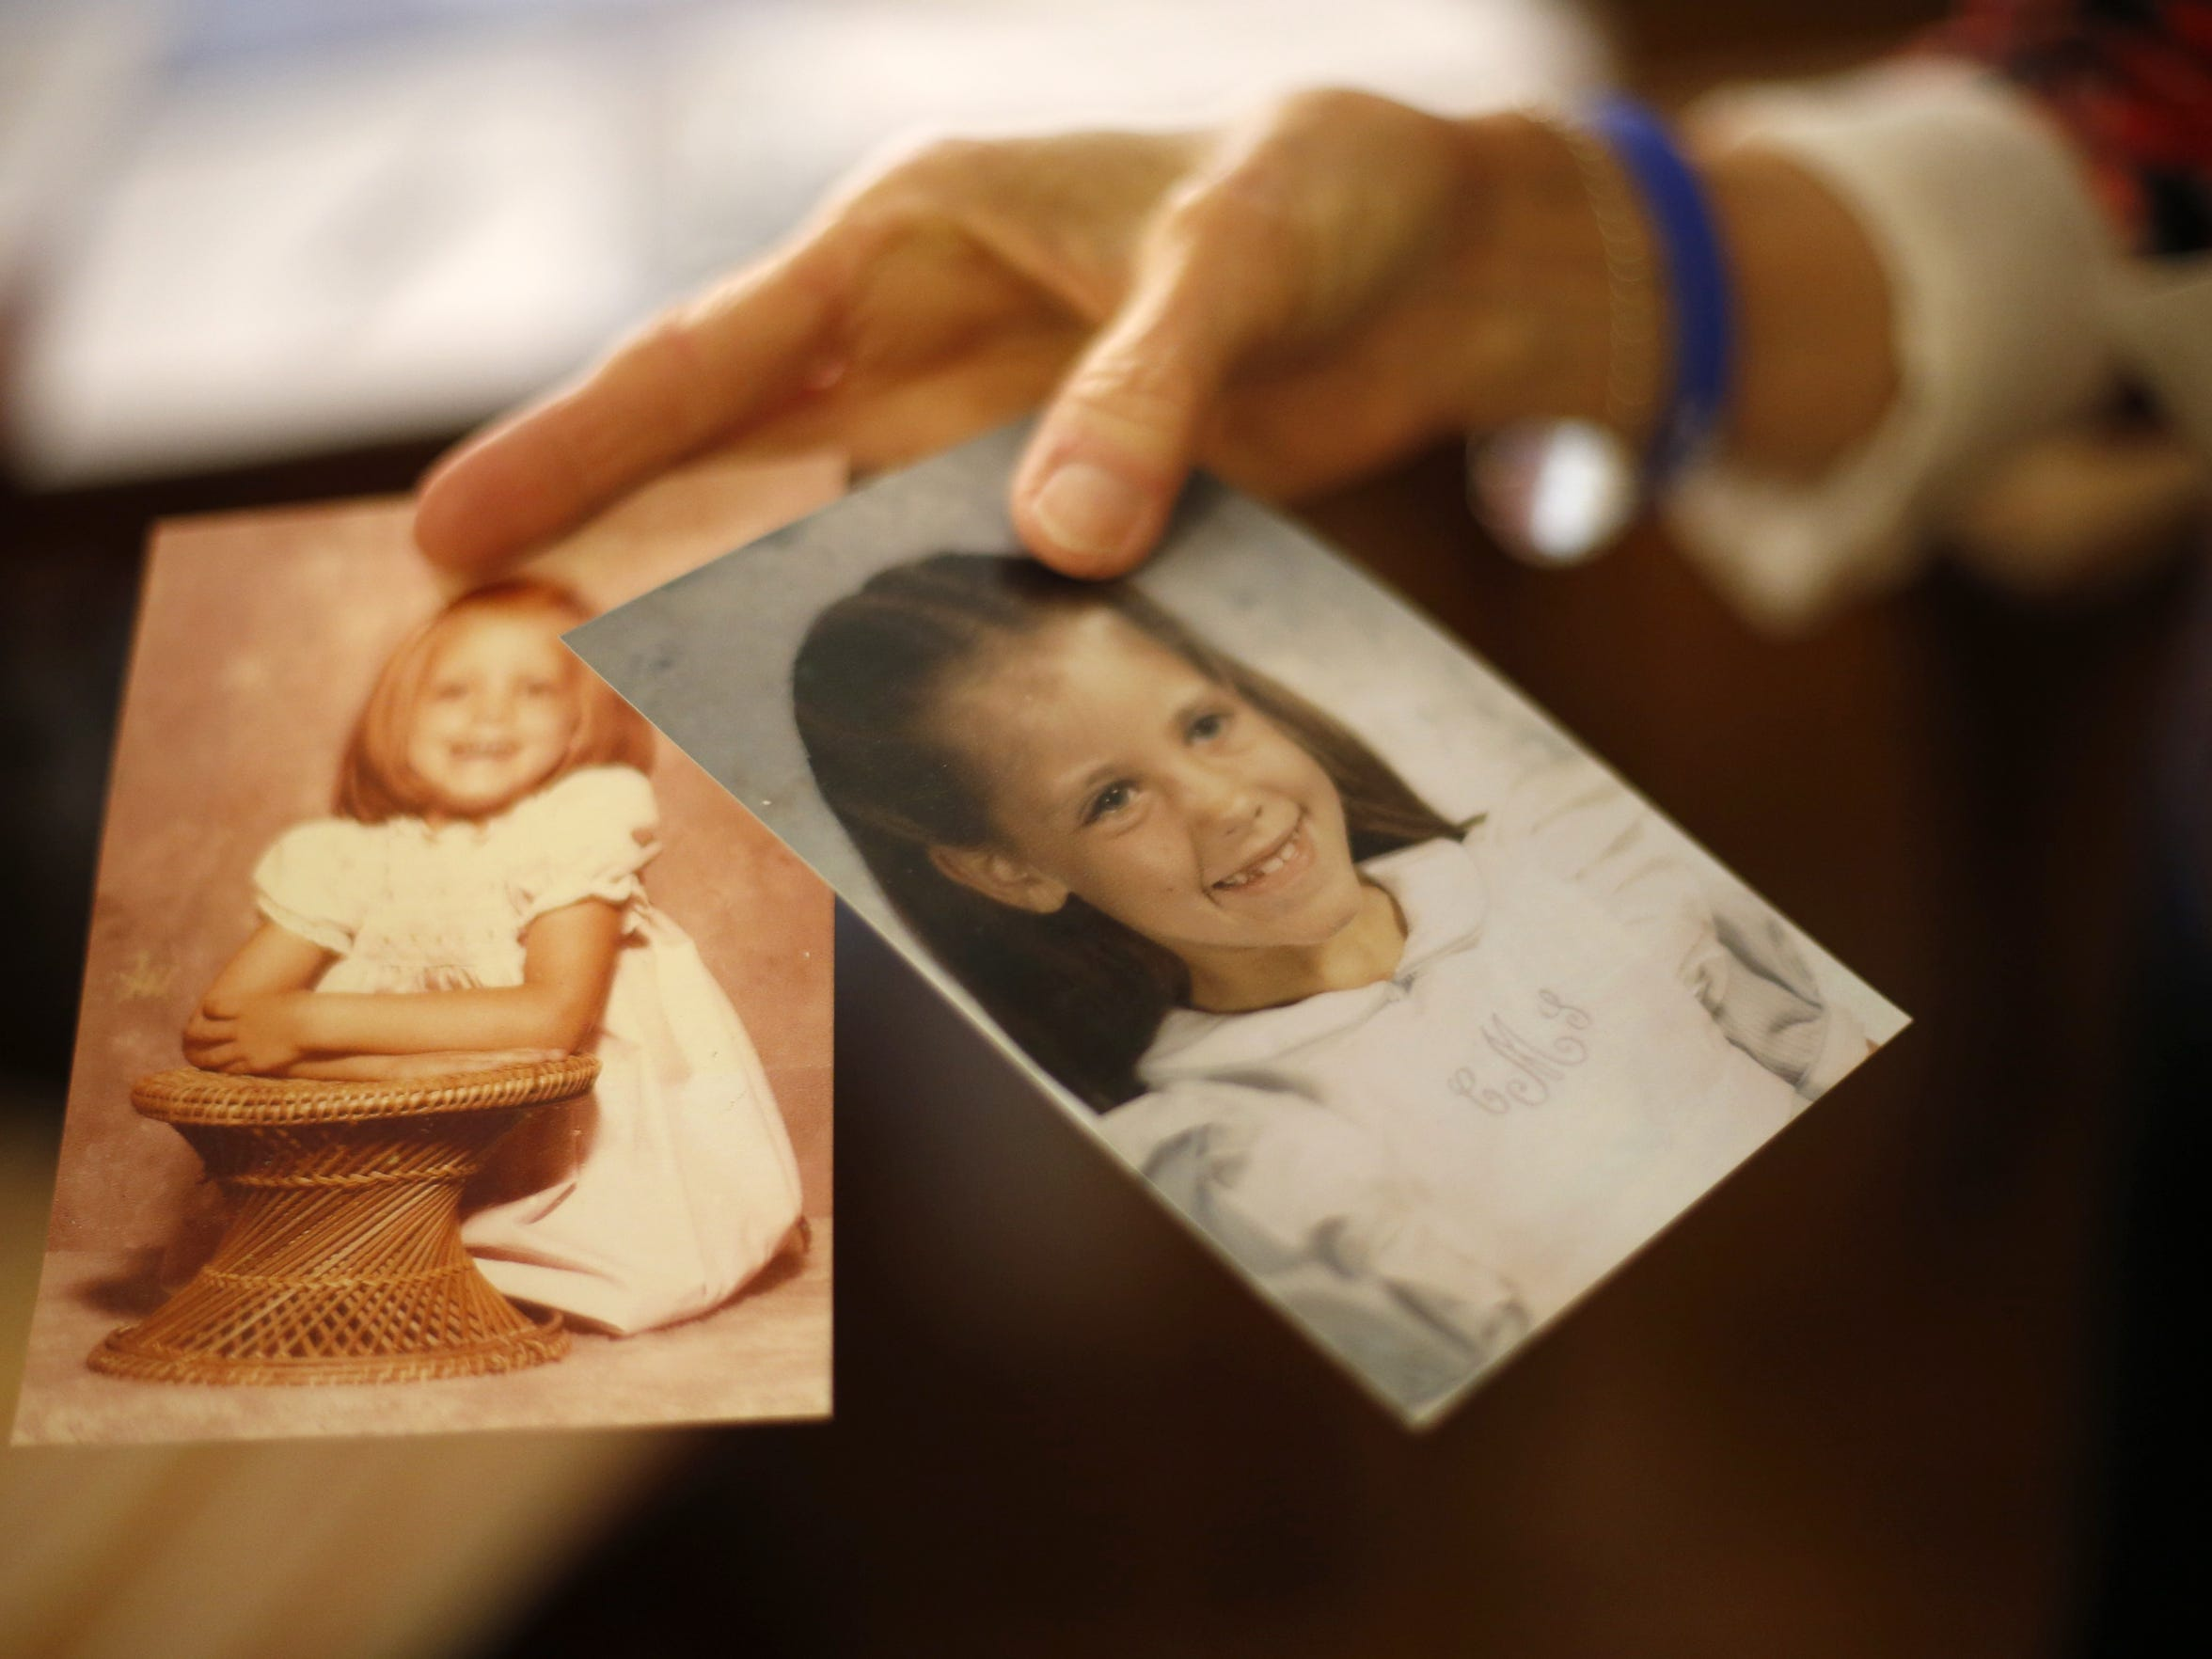 Karen McGehee holds old photos of her daughter Caroline at her home in Tallahassee.